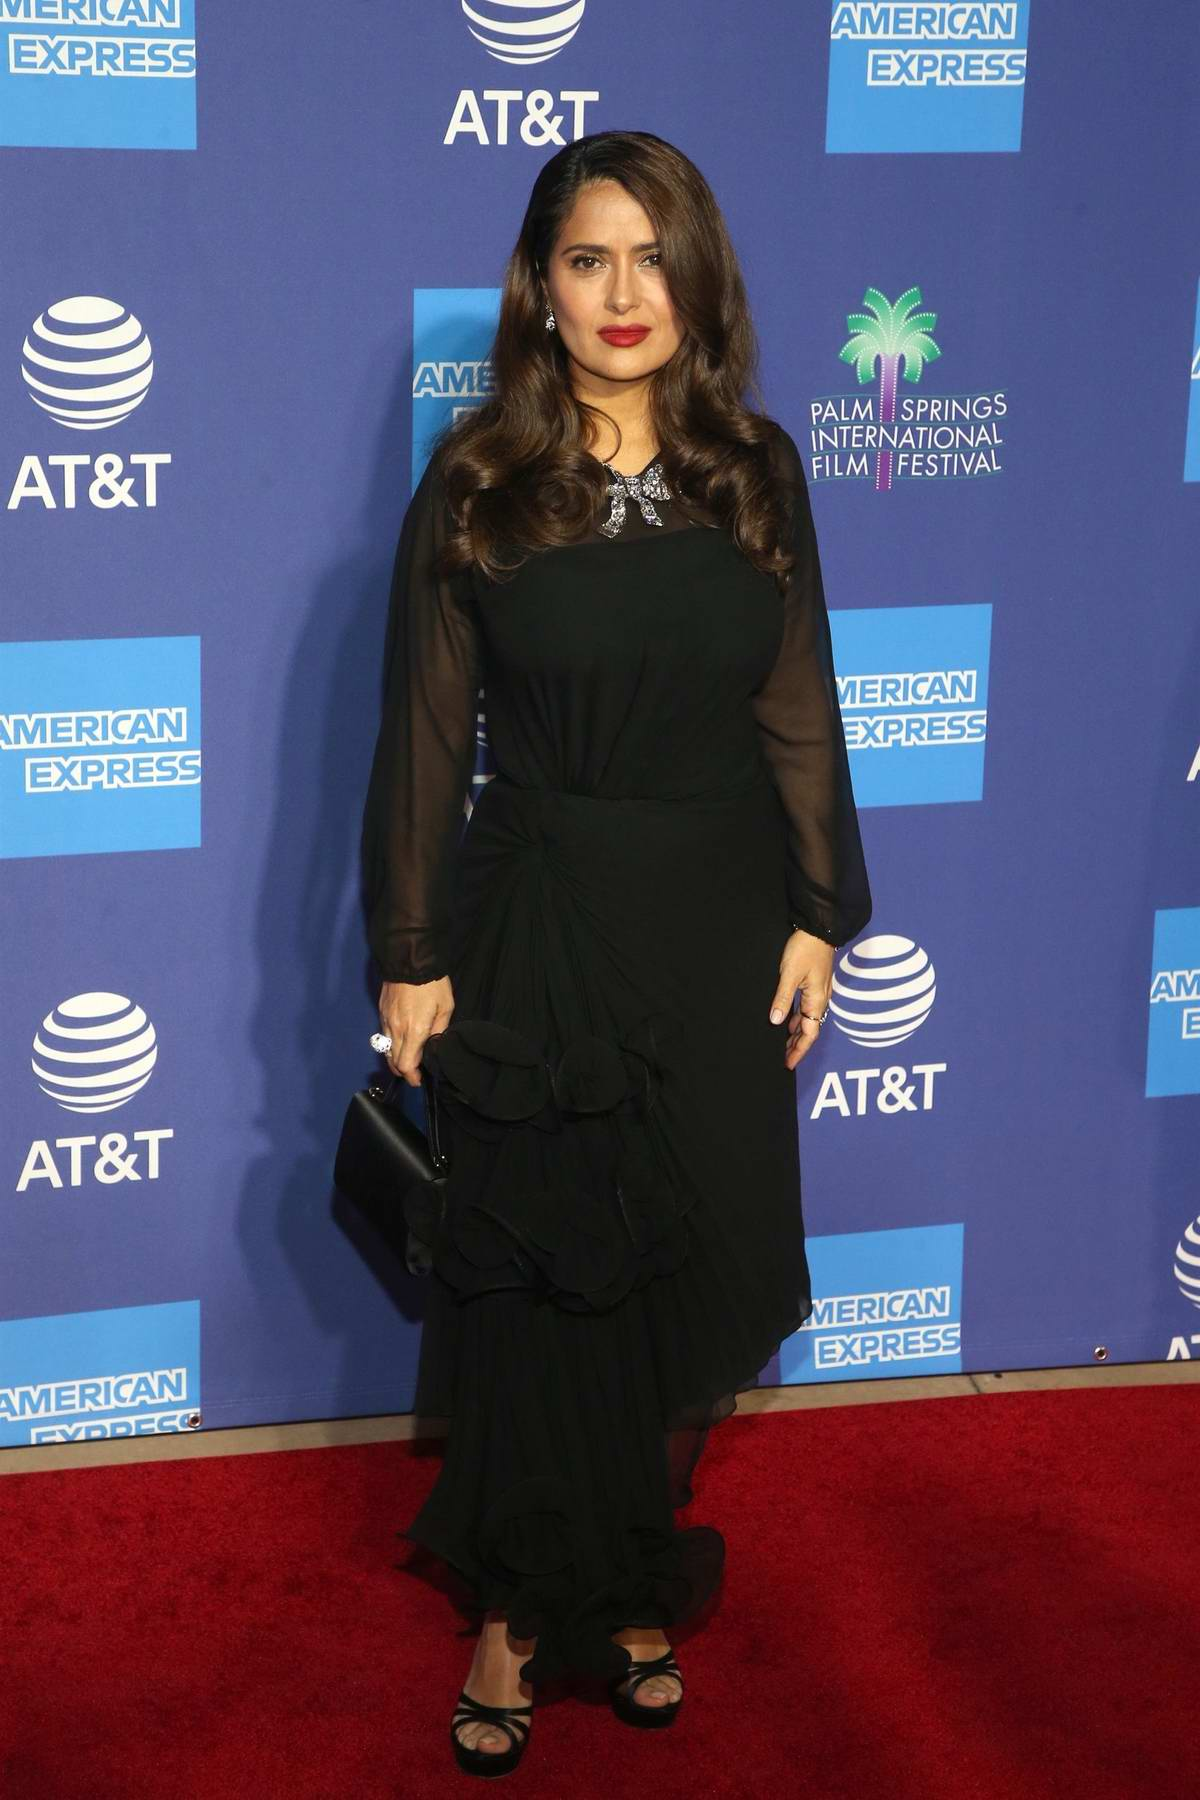 Salma Hayek attends the 31st Annual Palm Springs International Film Festival Gala in Palm Springs, California